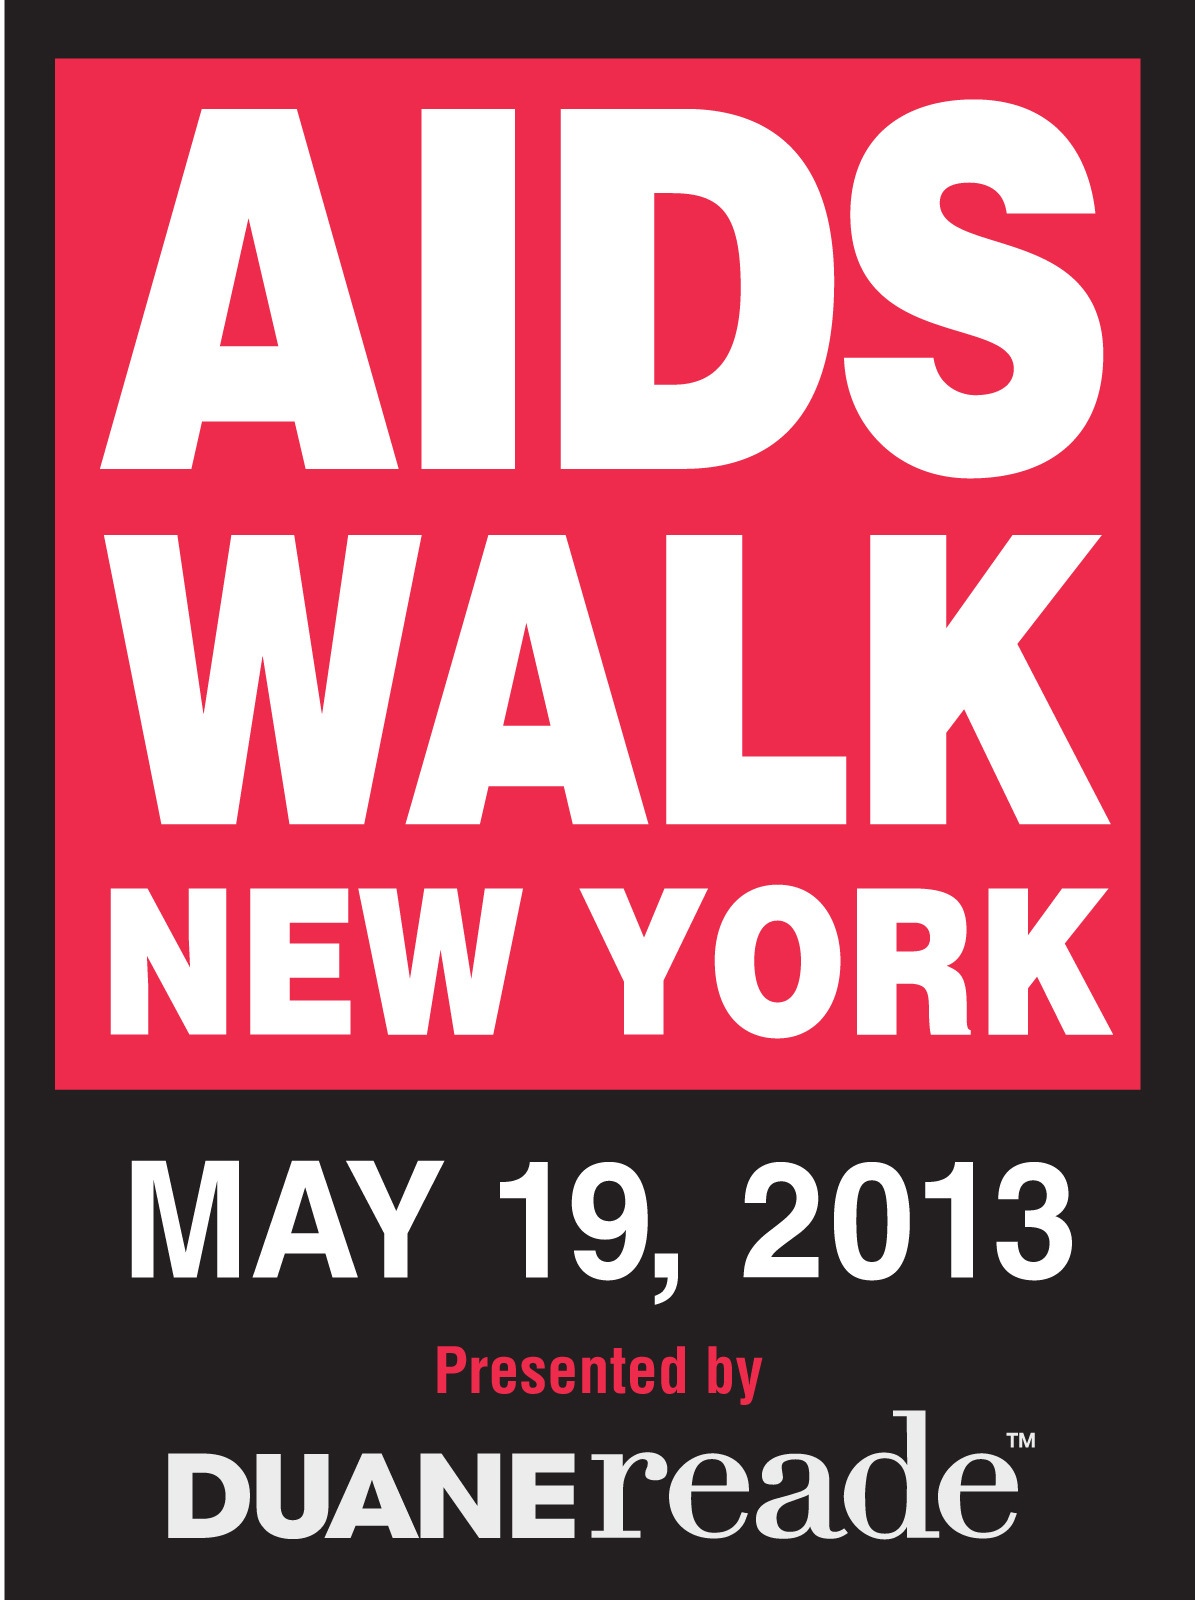 Register for AIDS Walk NY at http://aidswalk.net/newyork